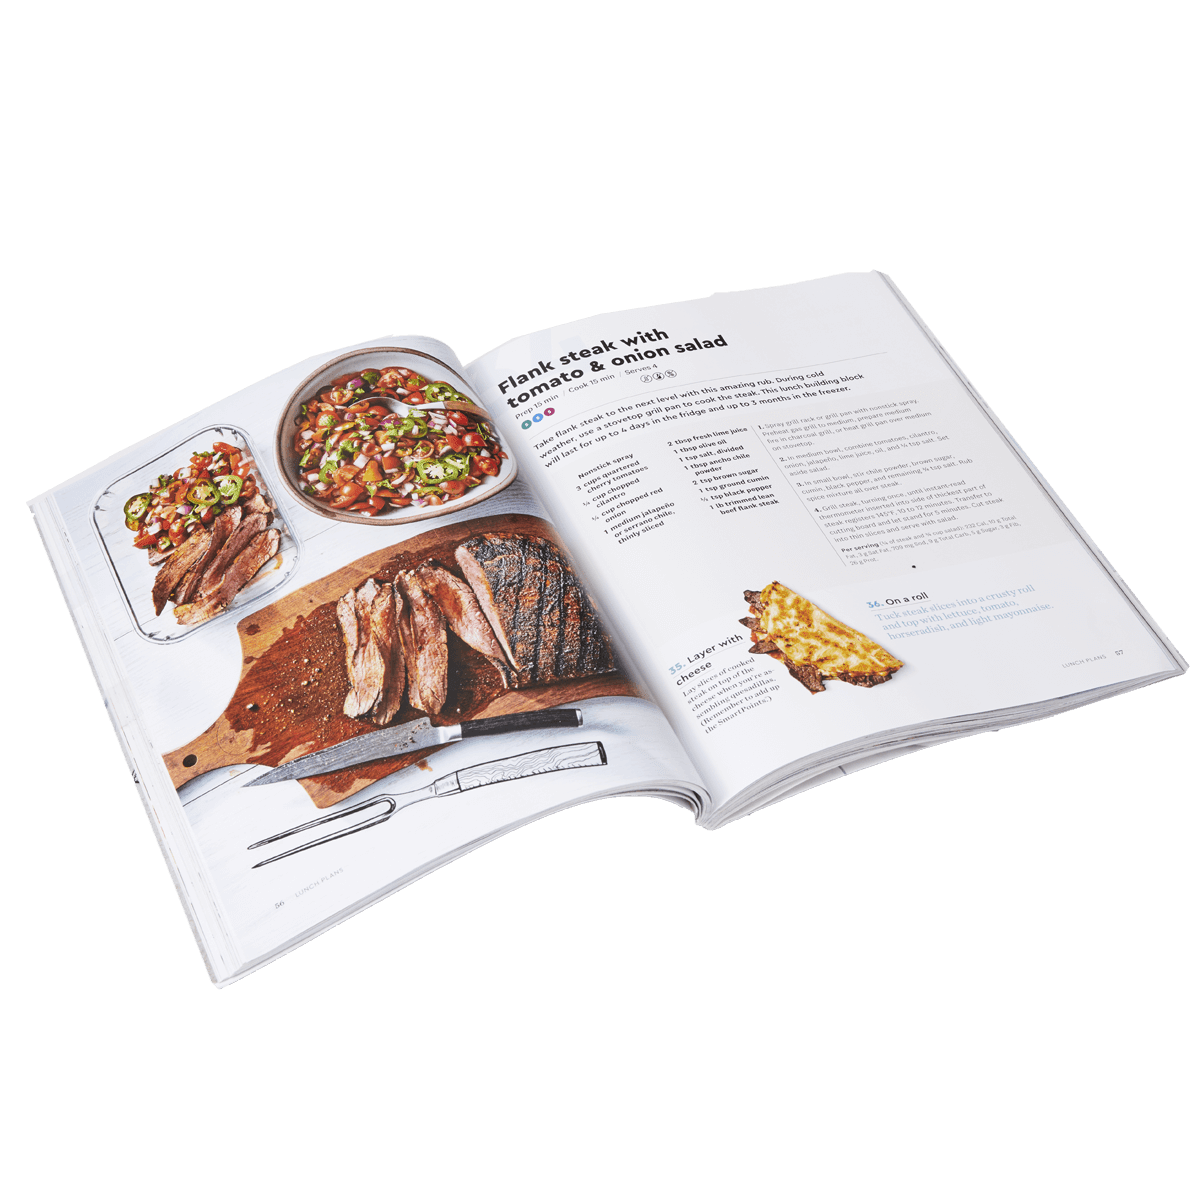 Lunch Plans Cookbook - page 1